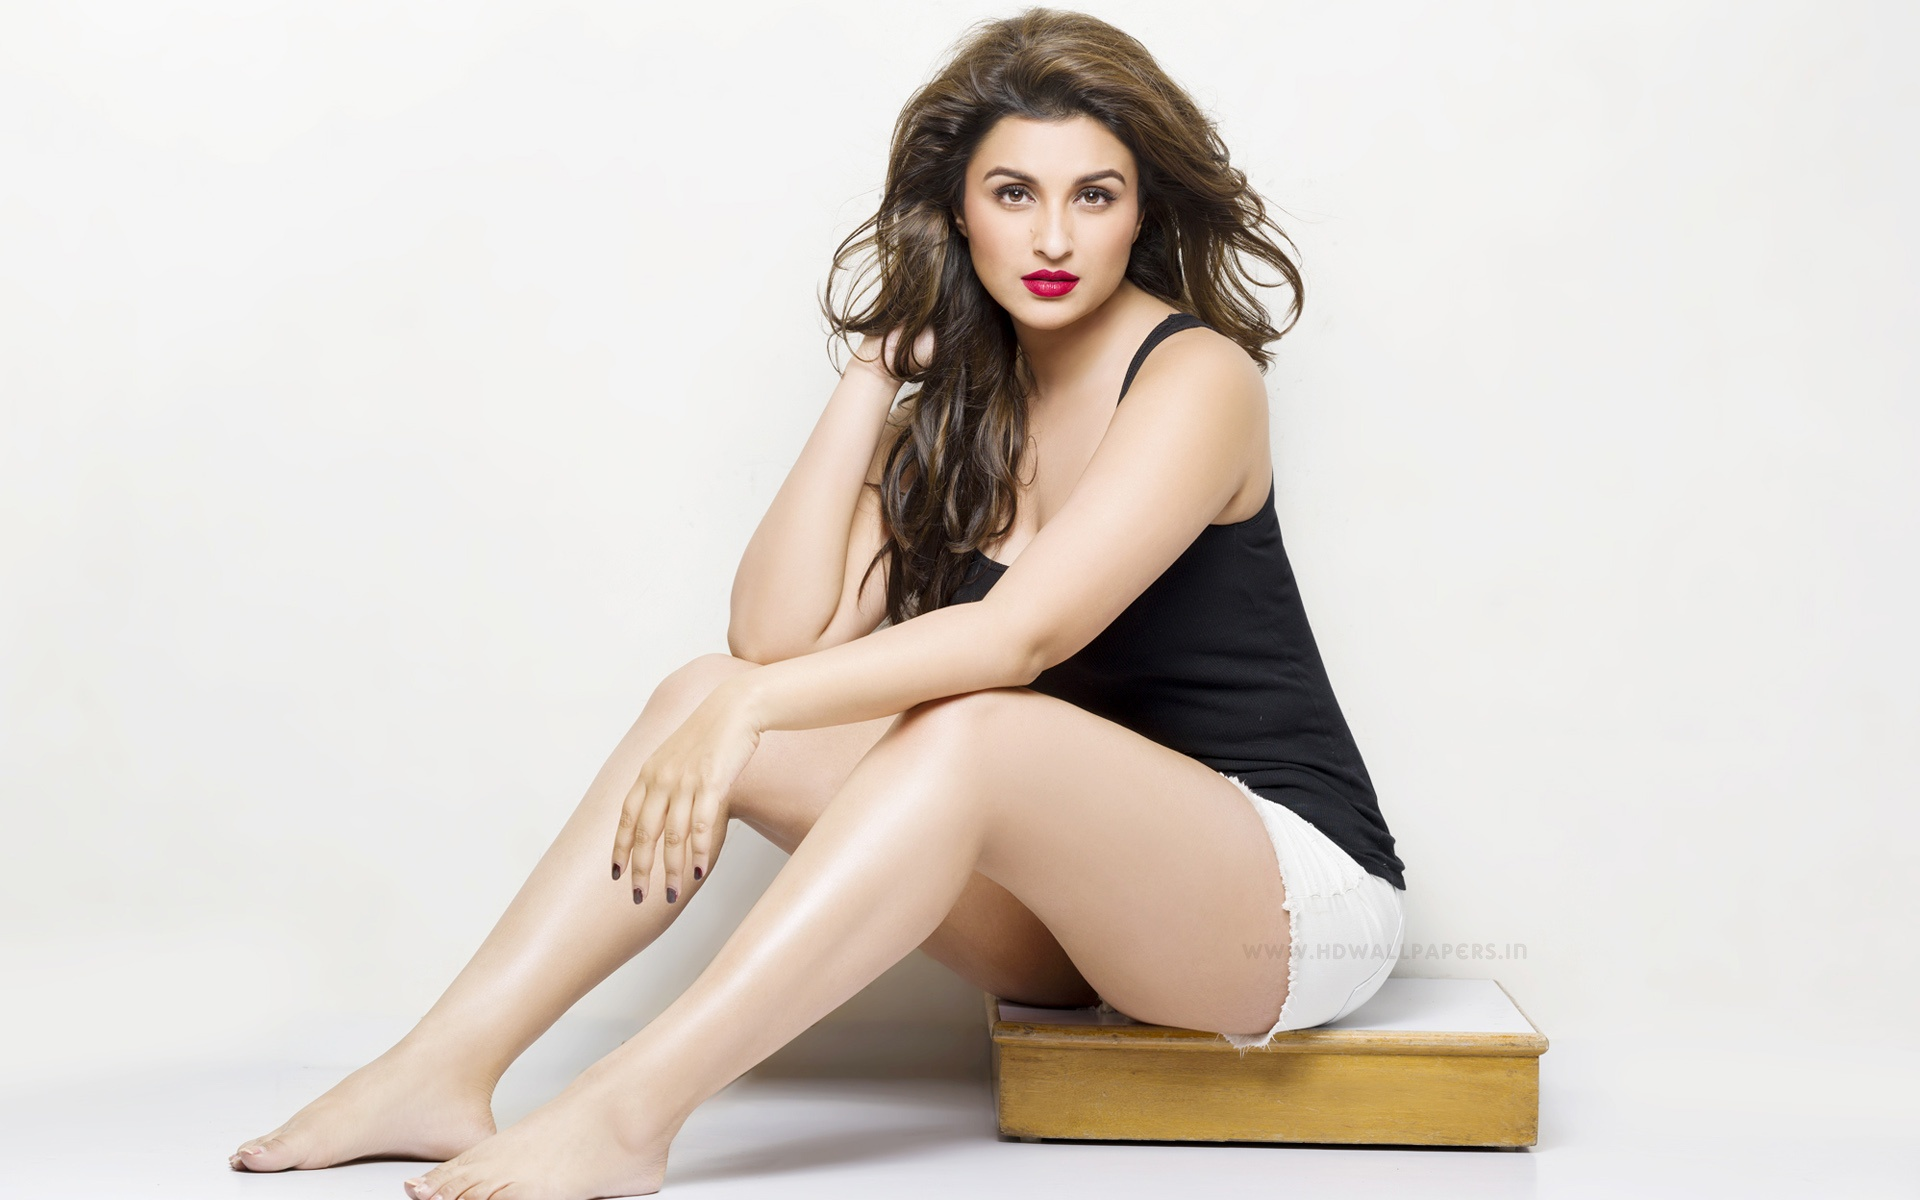 parineeti chopra 2015 hot wallpapers in jpg format for free download